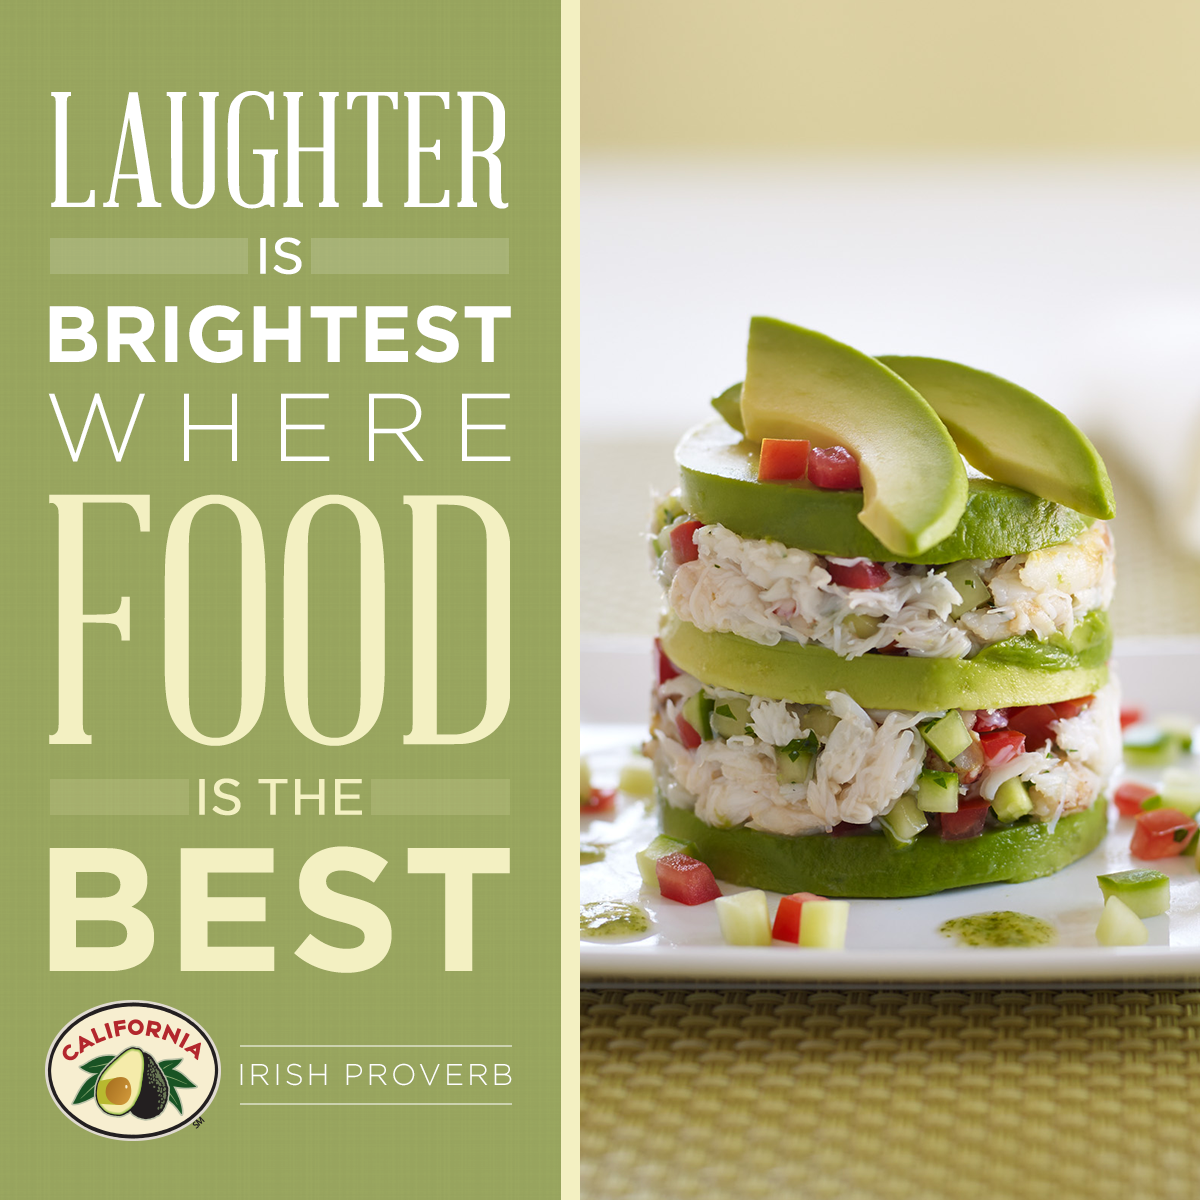 Laughter is brightest where food is best irish proverb quote food forumfinder Images